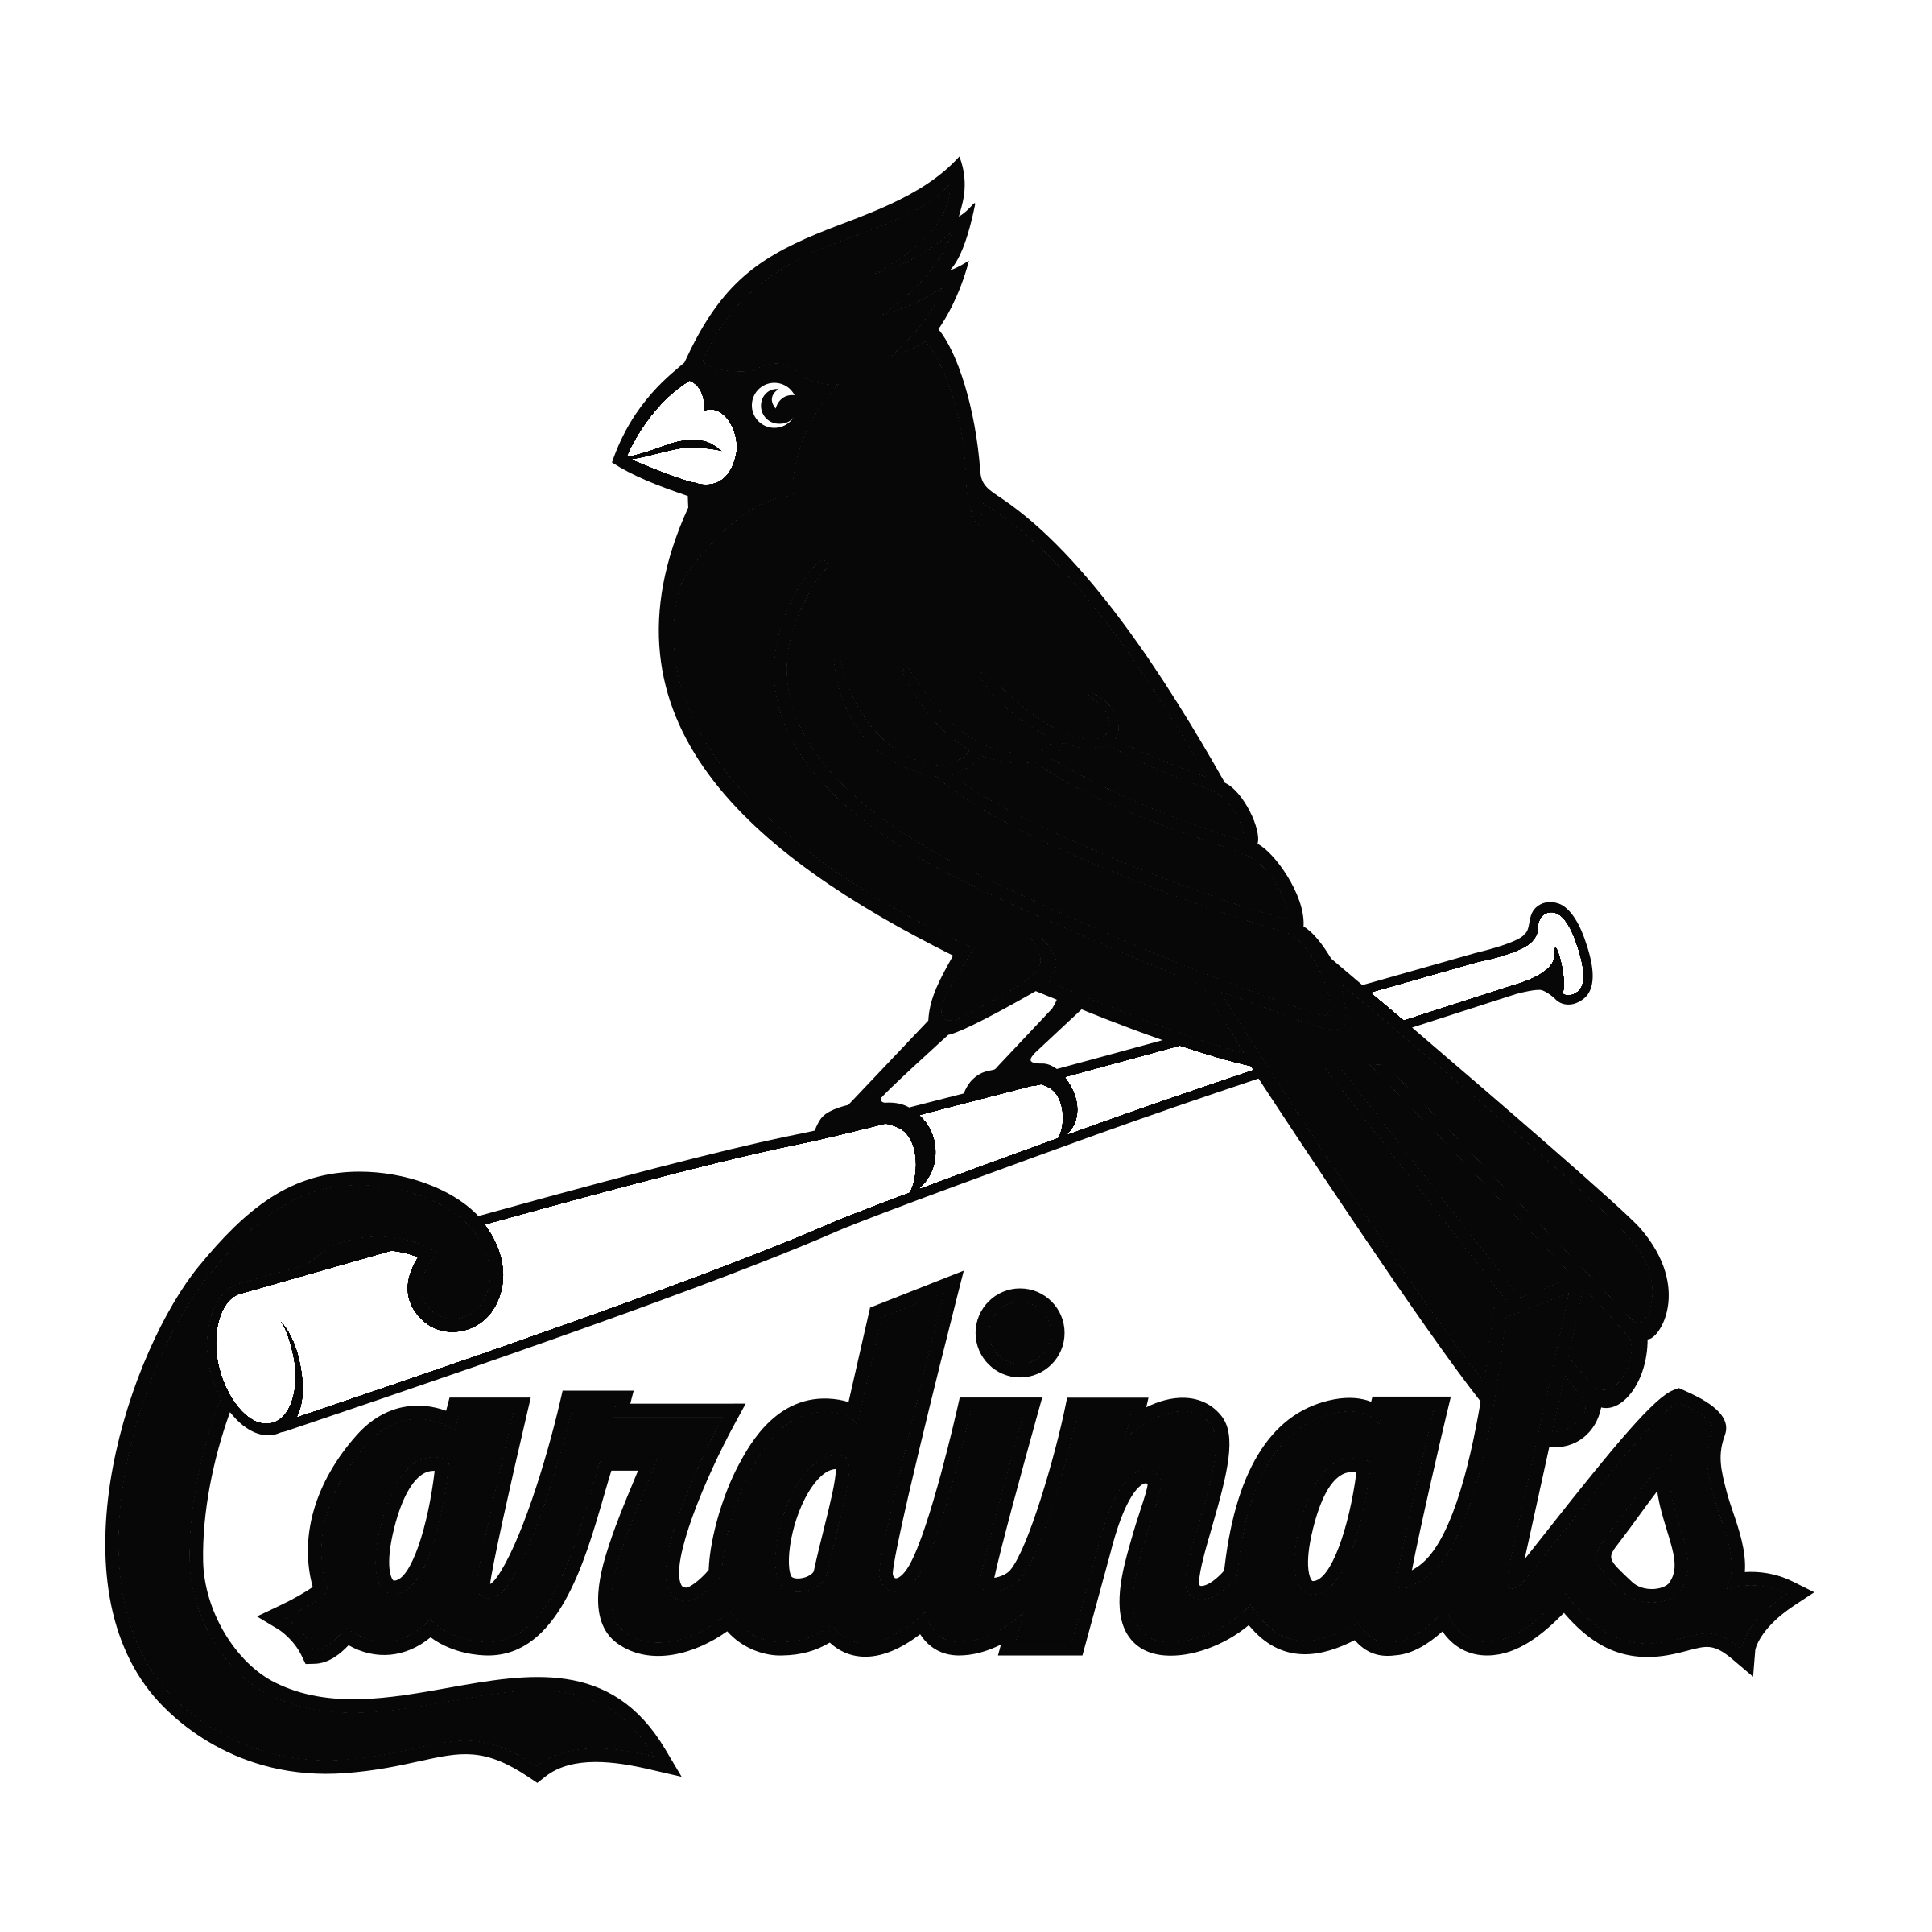 st louis cardinals logo black